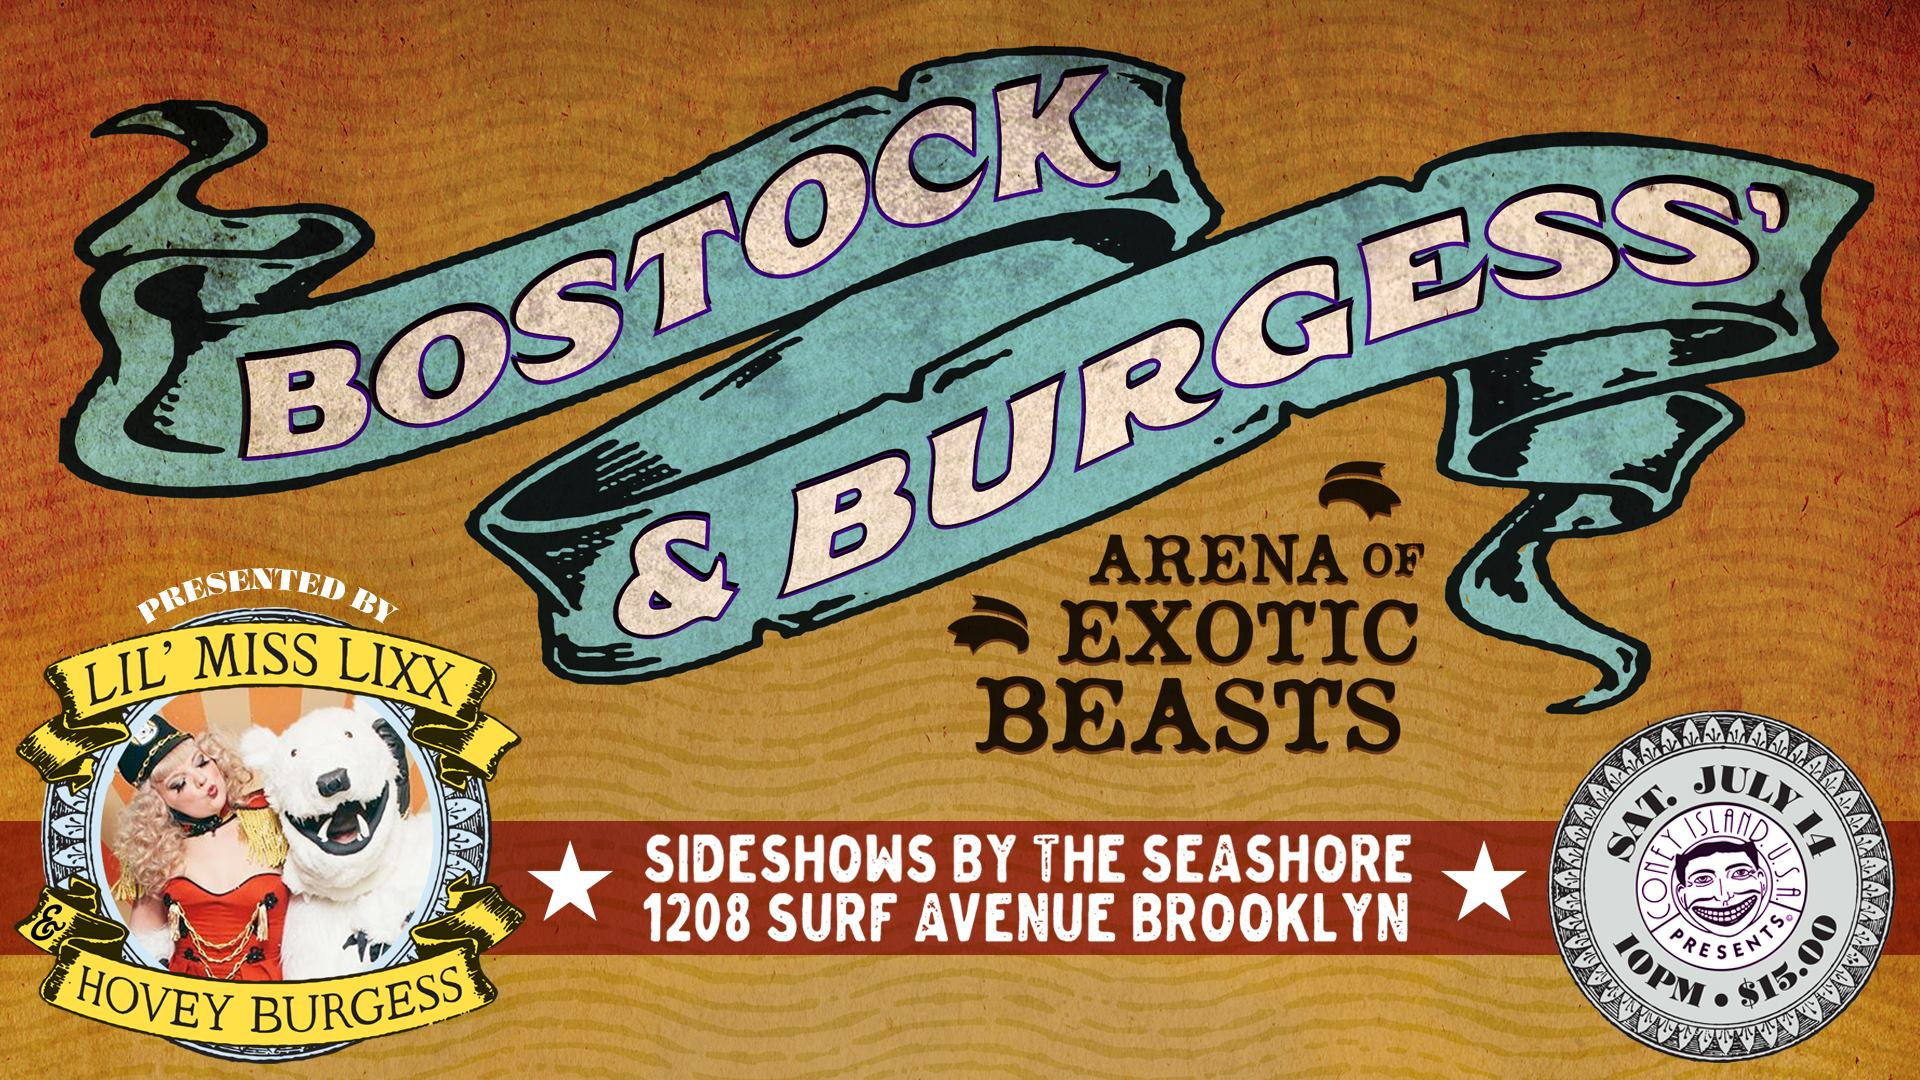 Bostock and Burgess' Arena of Exotic Beasts